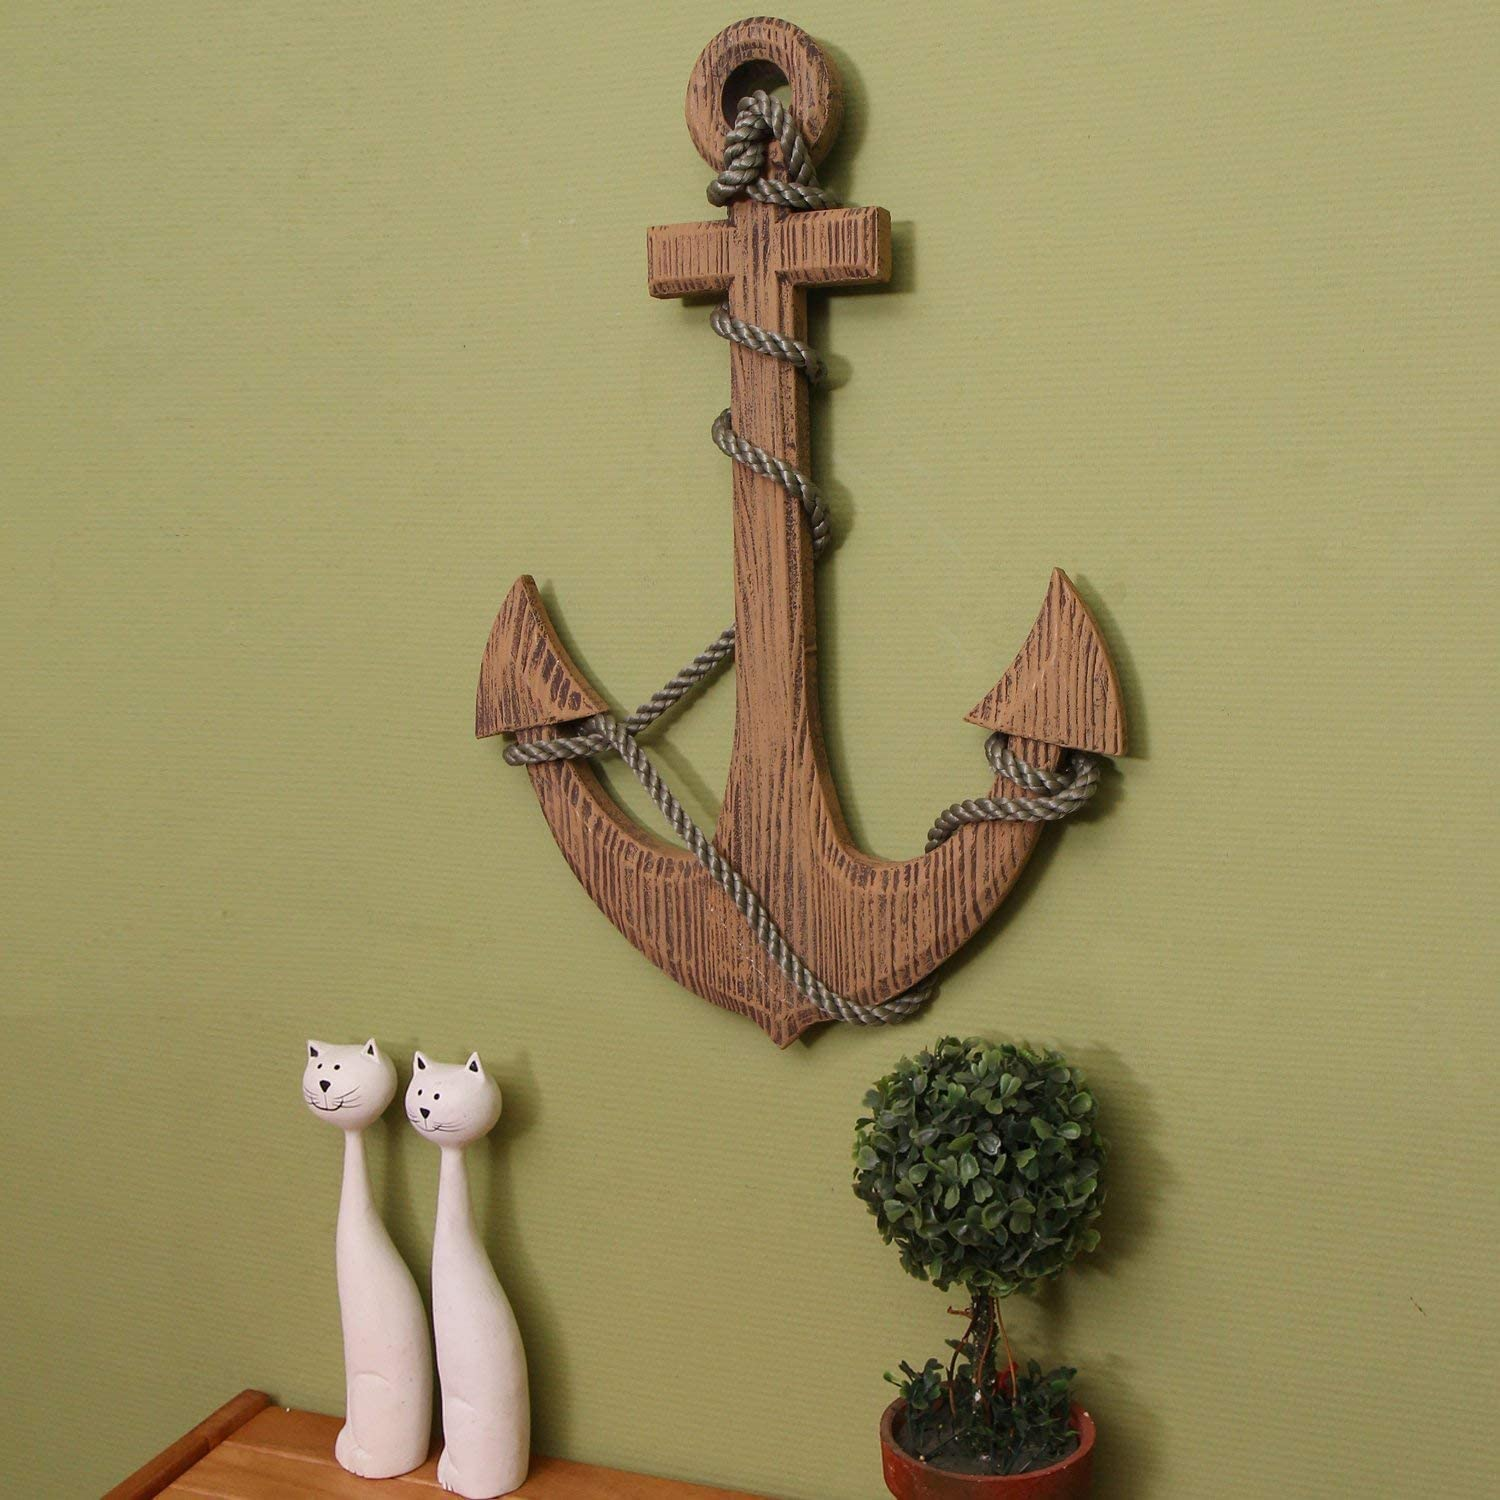 Wood Anchor Pirate Ship Boat Nautical Maritime Wall Hanging Outdoor Home Decor